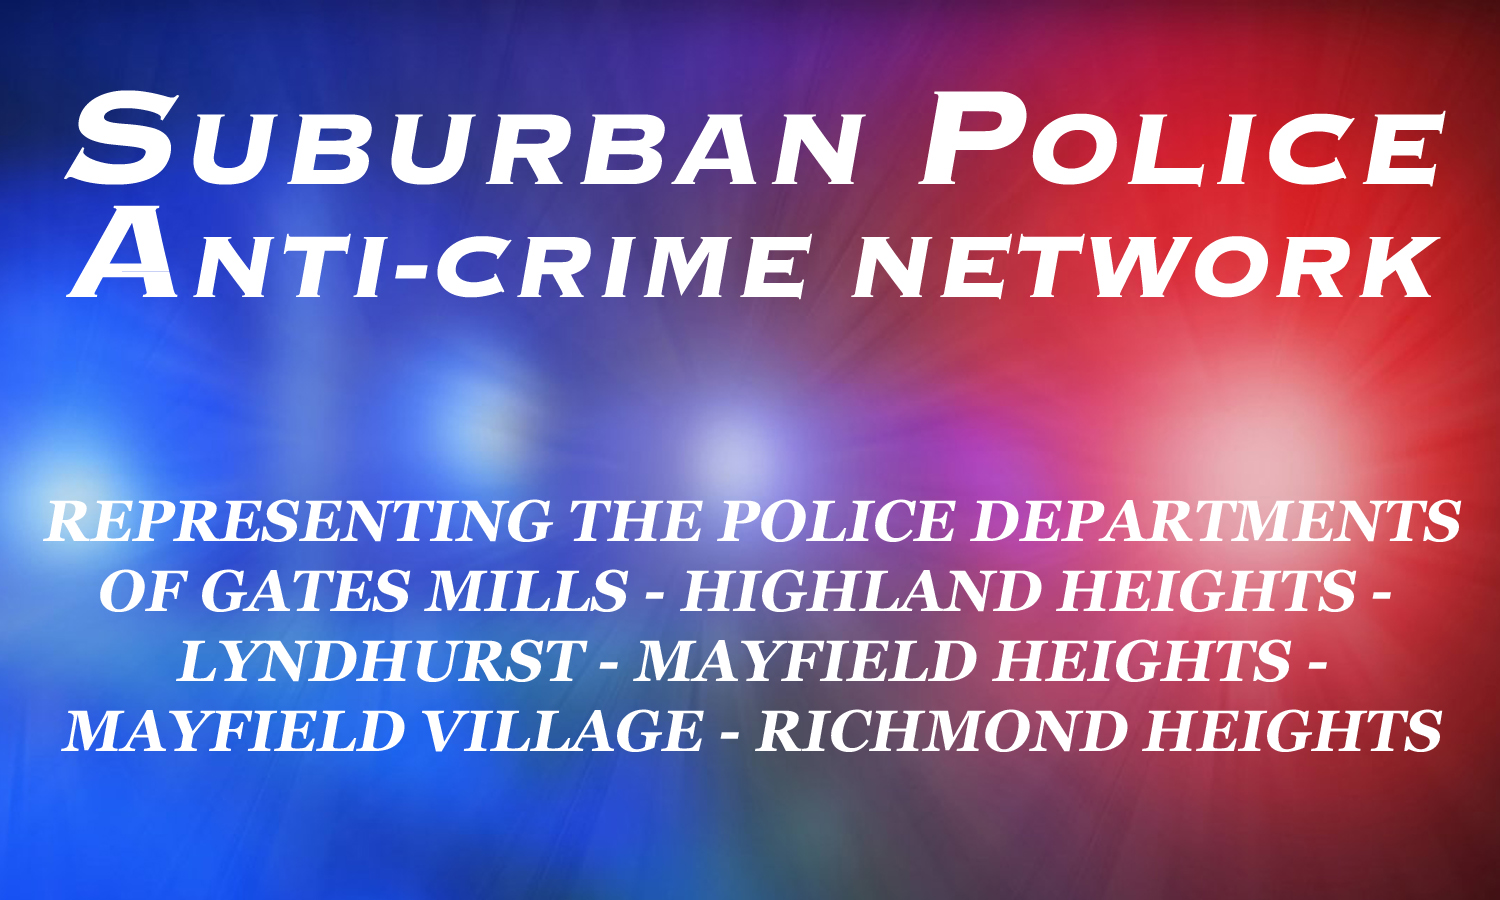 Suburban heights anti crime network.jpg